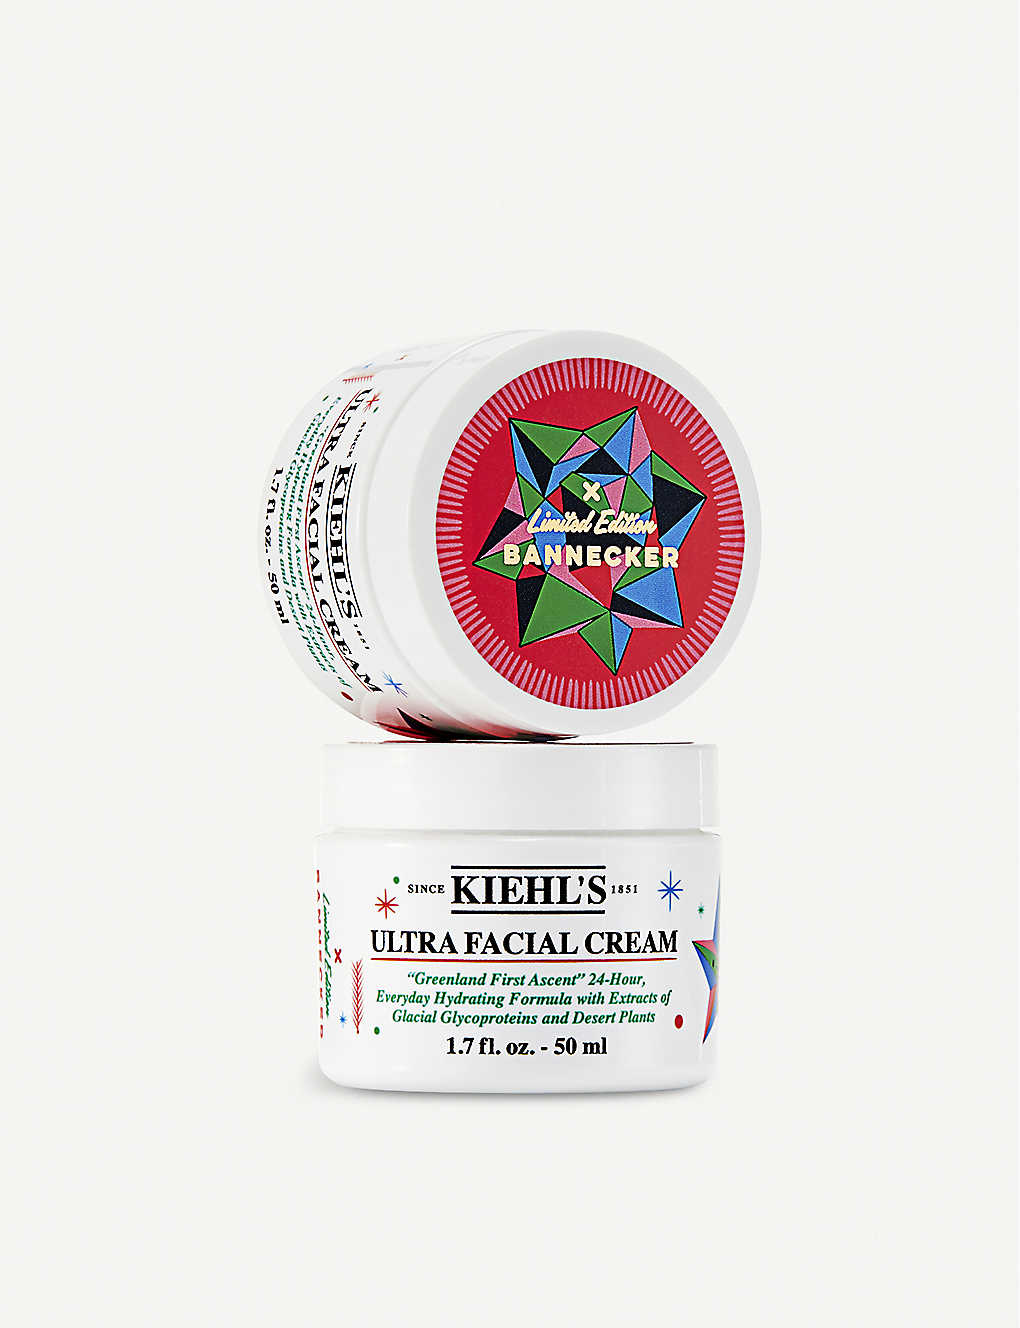 Kiehls X Andrew Bannecker Ultra Facial Cream 50ml Skin Brightening Exfoliator 25ml No Recent Searches